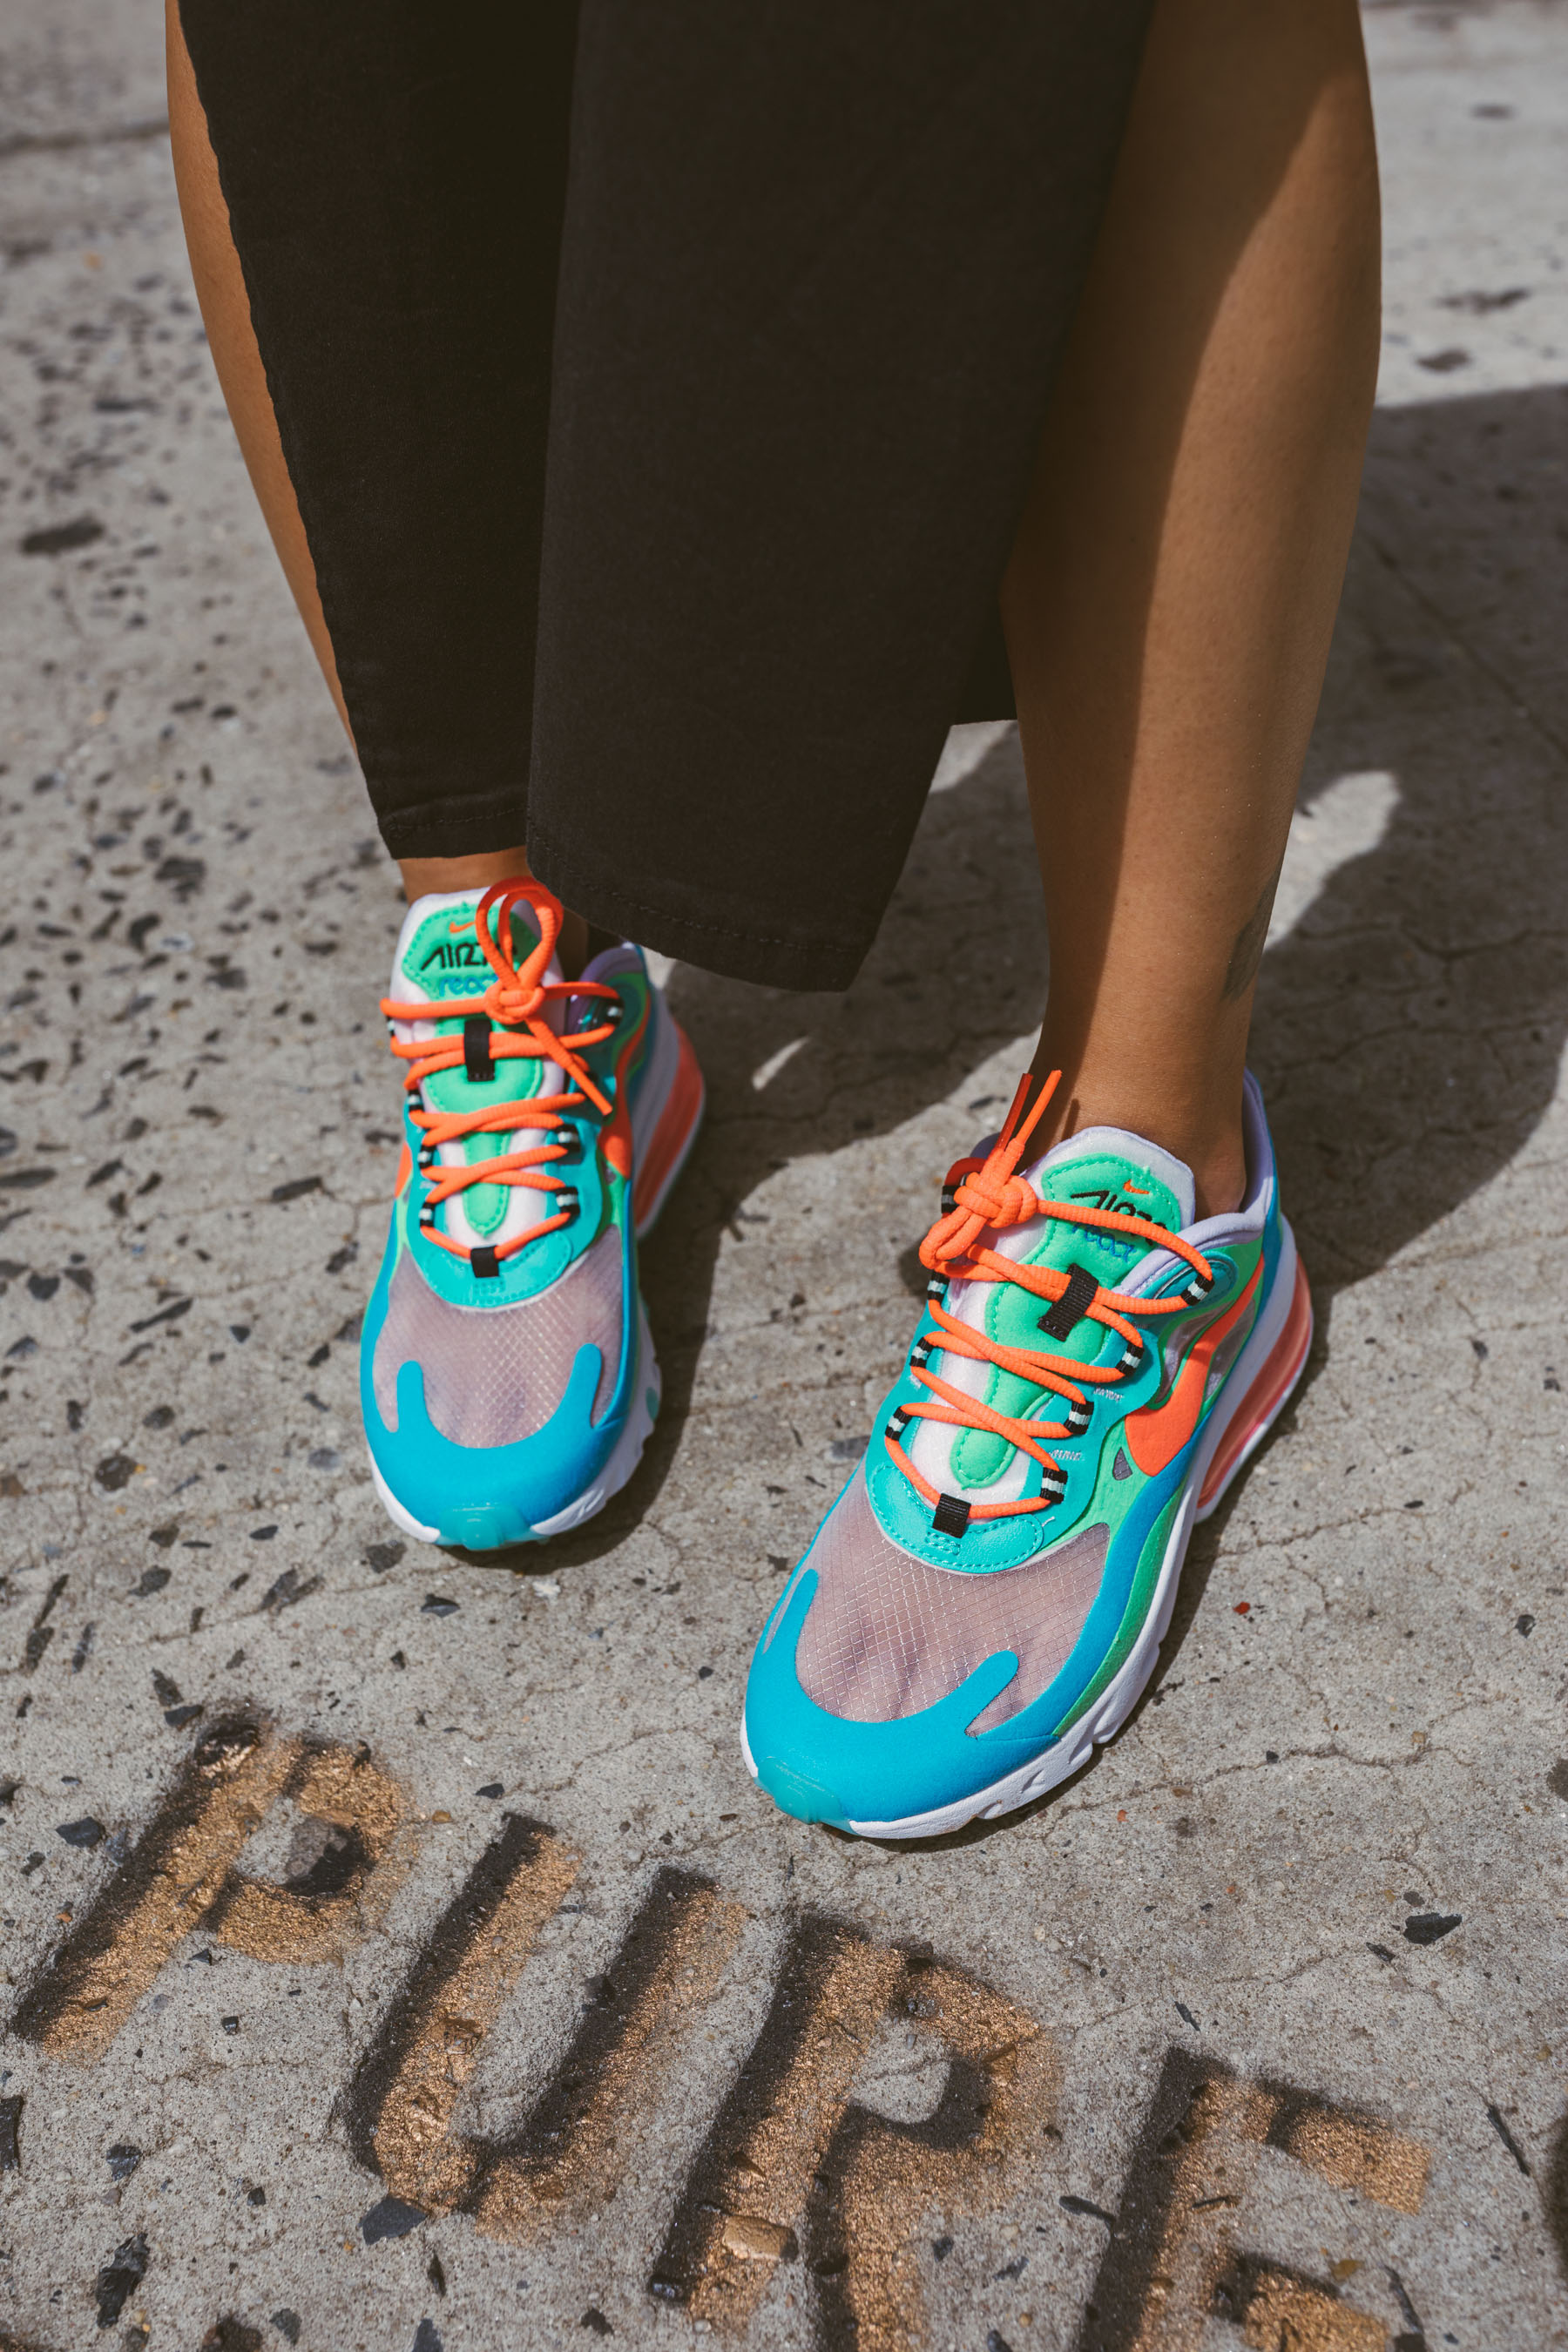 best fashion sneakers for fall, Nike React 270's Women's Psychedelic Colorway, Nike React 270 sneakers, bold sneakers // Notjessfashion.com